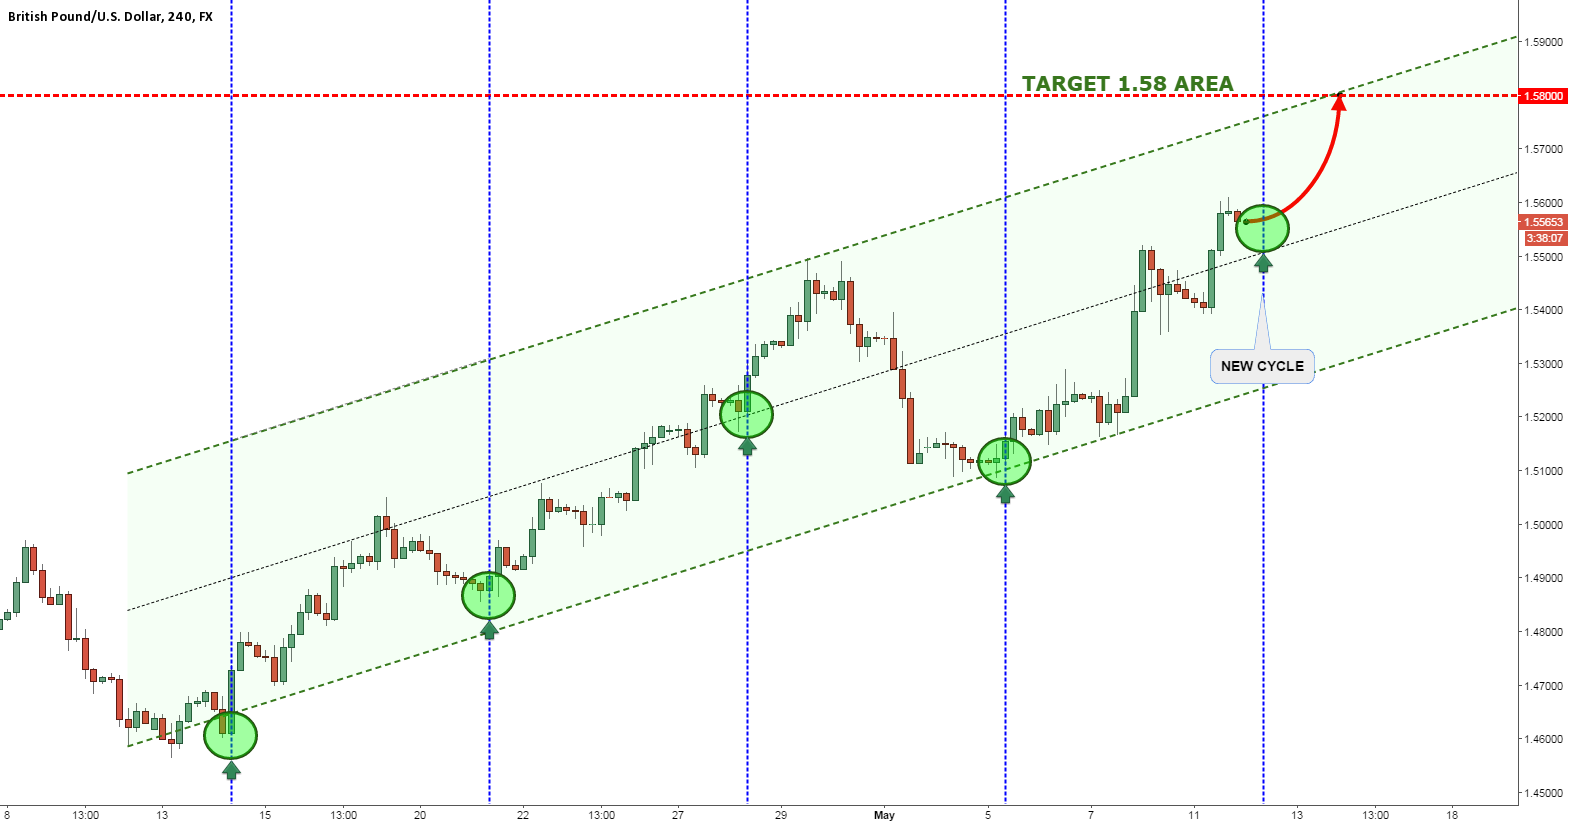 GBPUSD COULD CONTINUE RISING